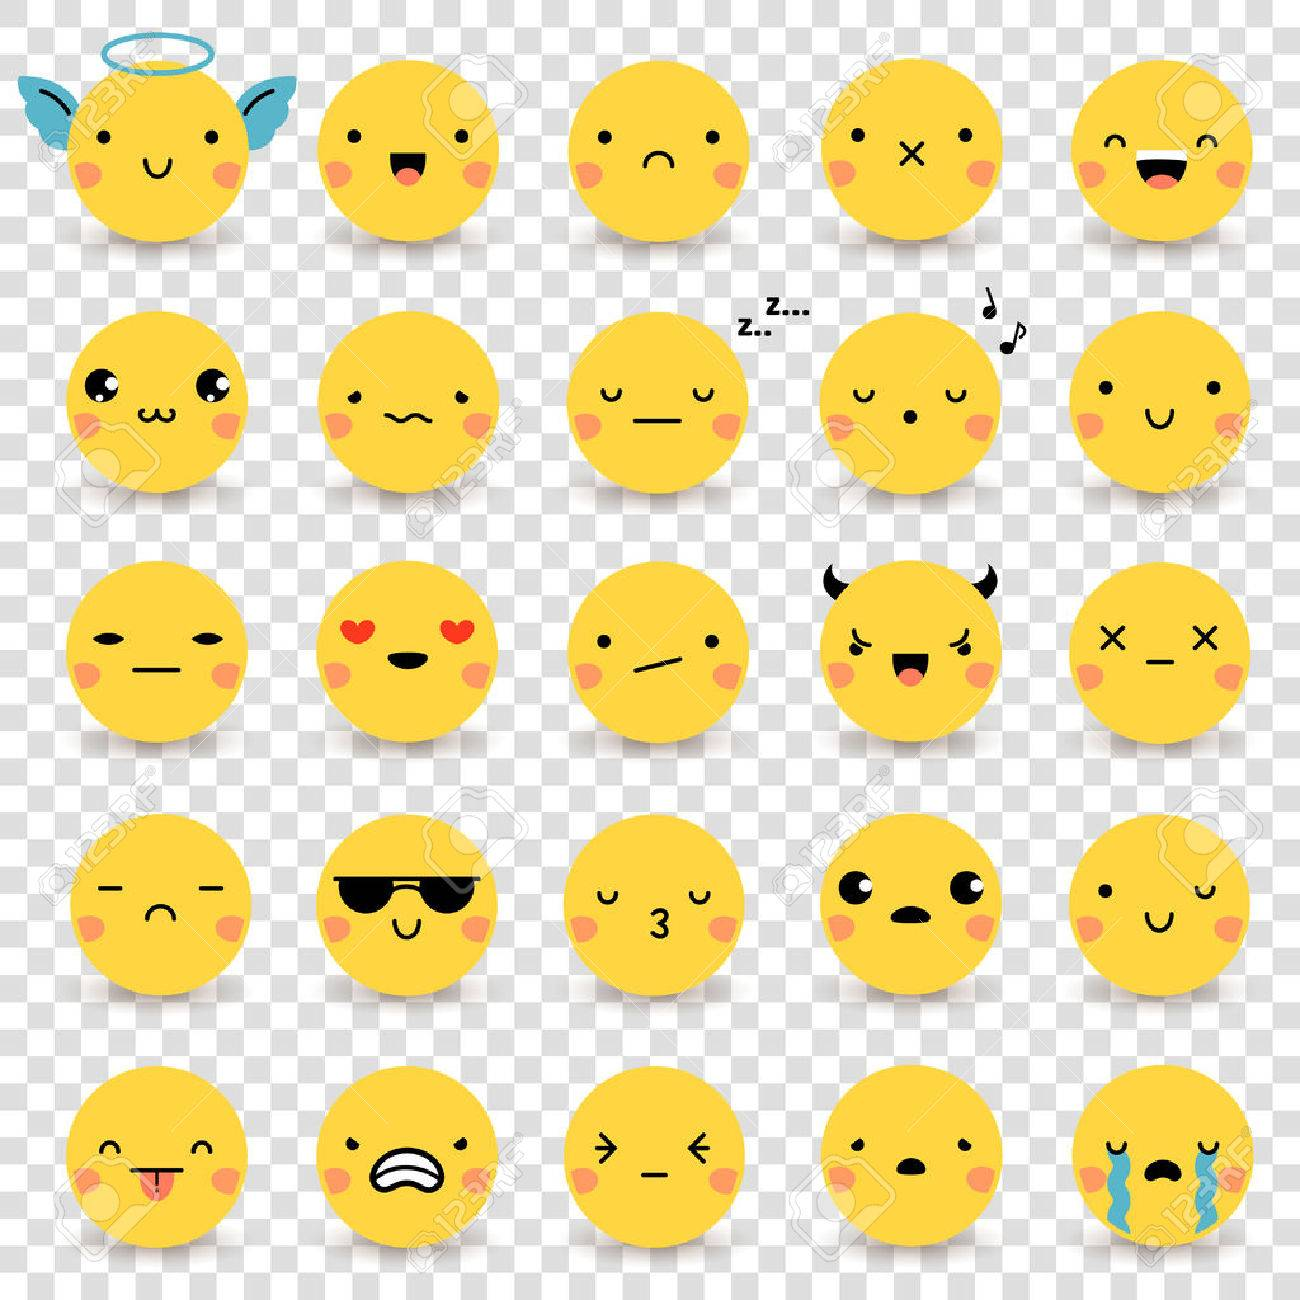 Twenty-five cute yellow flat emoticons set with various emotions isolated on transparent background vector illustrations Stock Vector - 59676179